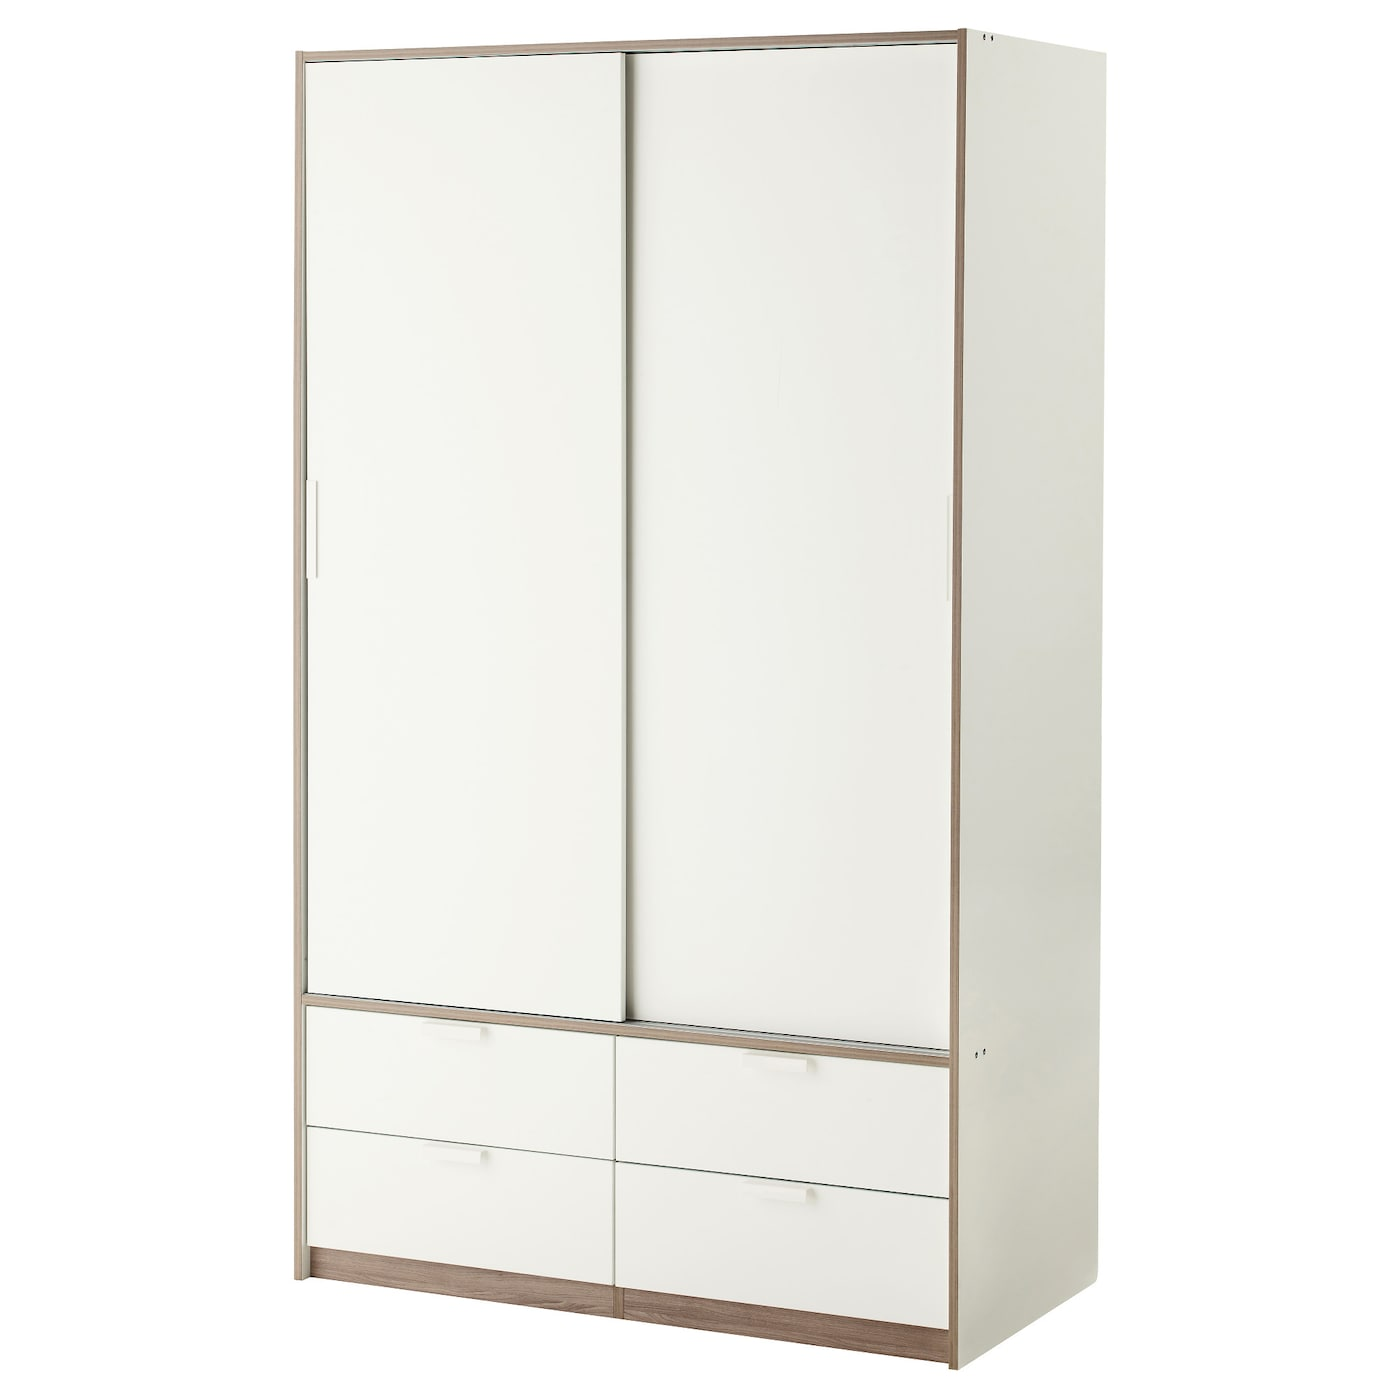 Trysil Wardrobe W Sliding Doors4 Drawers White 118 X 61 X 202 Cm Ikea